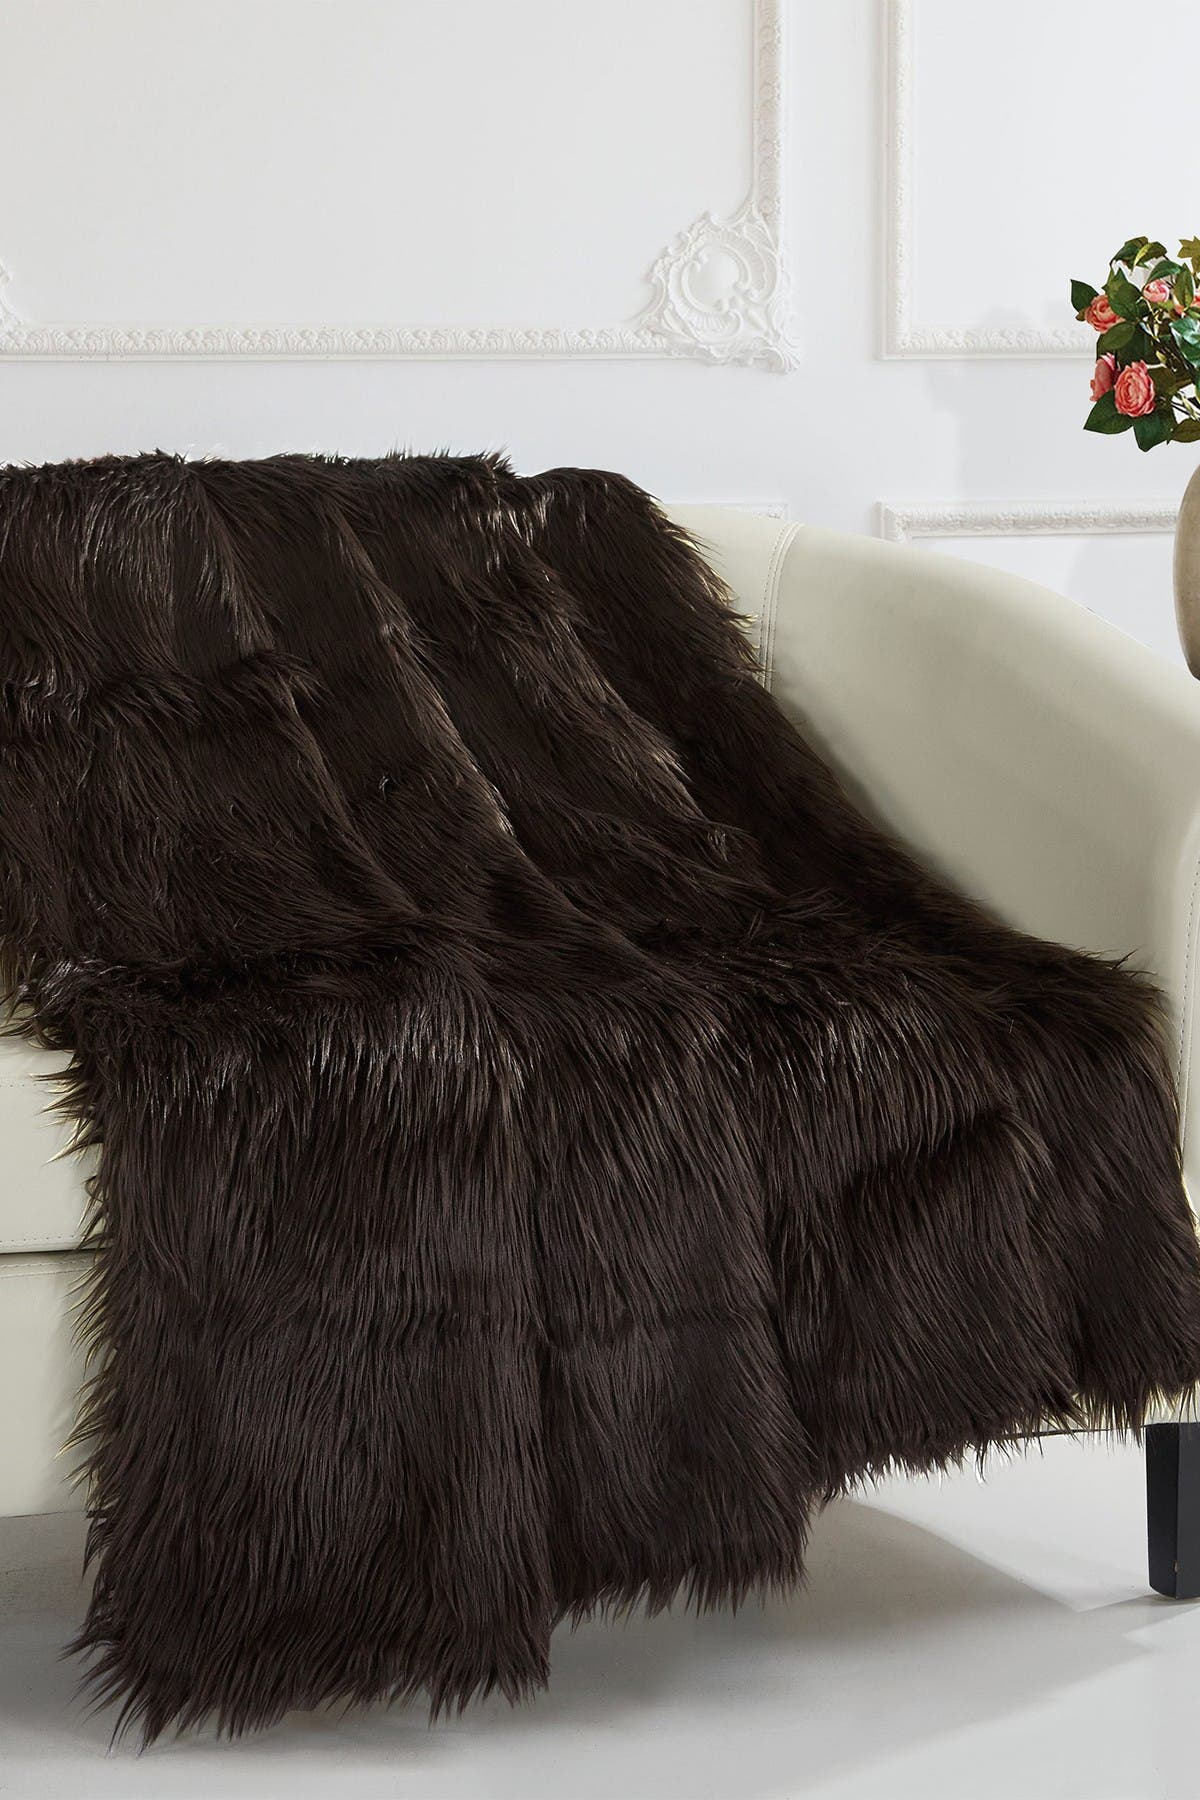 Chic Home Bedding Krista Shaggy Faux Fur Blanket - 50\\\